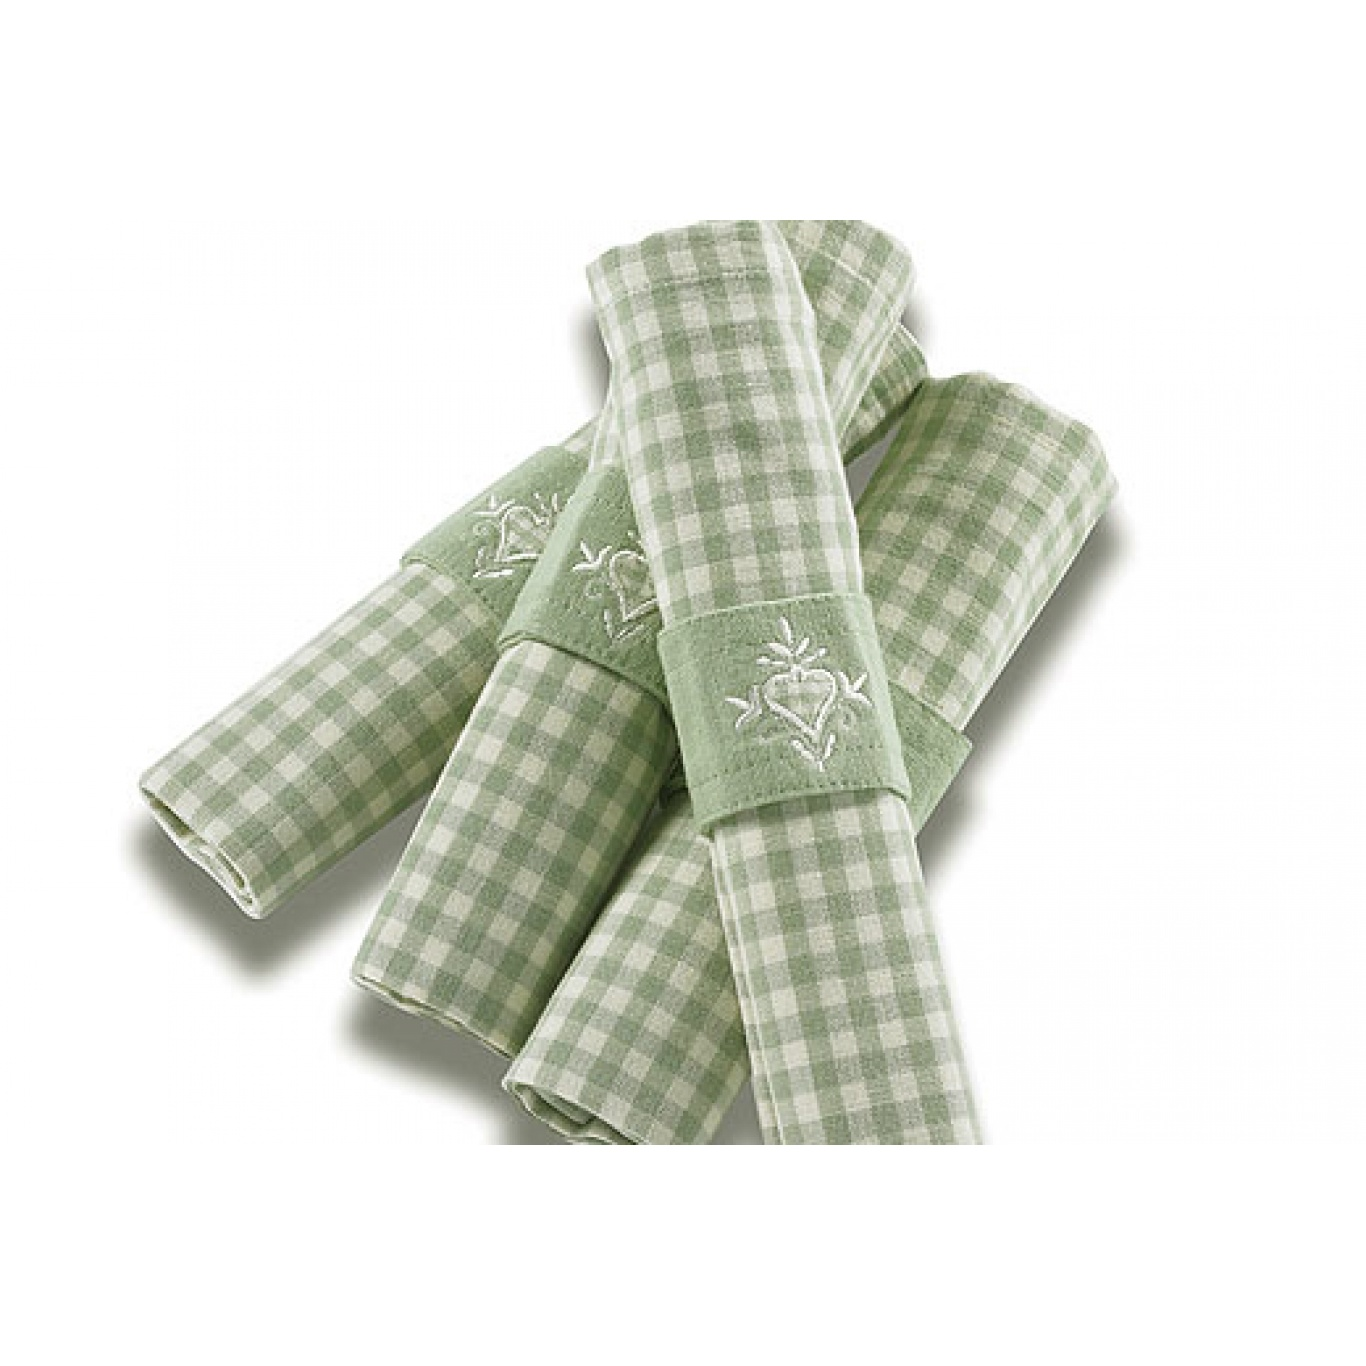 Auberge Duck Egg Green Check Napkins set of 4